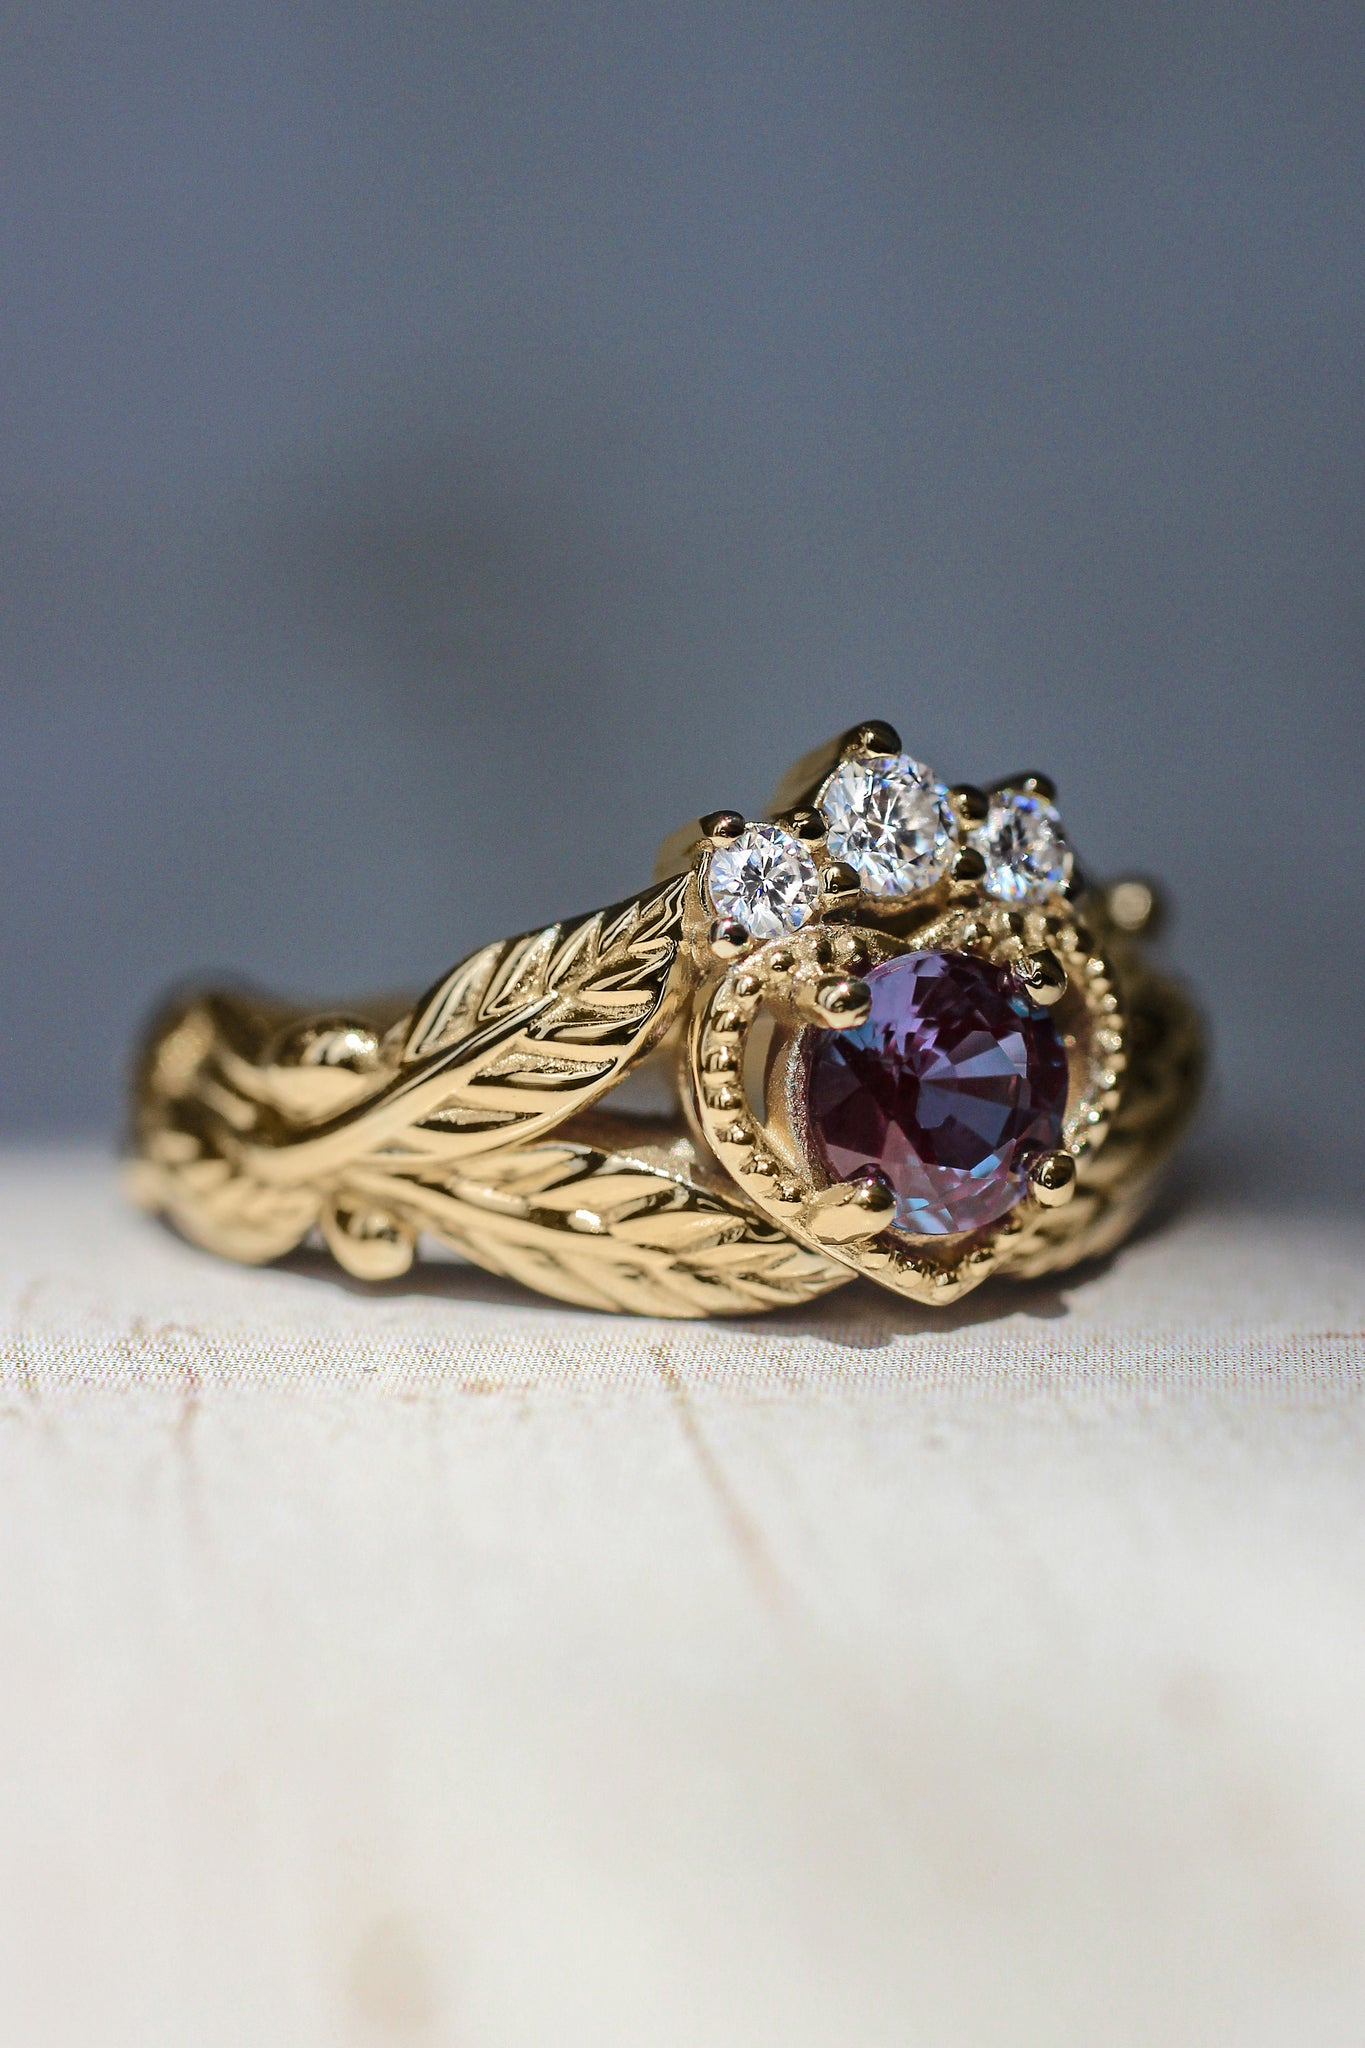 Alexandrite heart and diamonds engagement ring, Claddagh ring - Eden Garden Jewelry